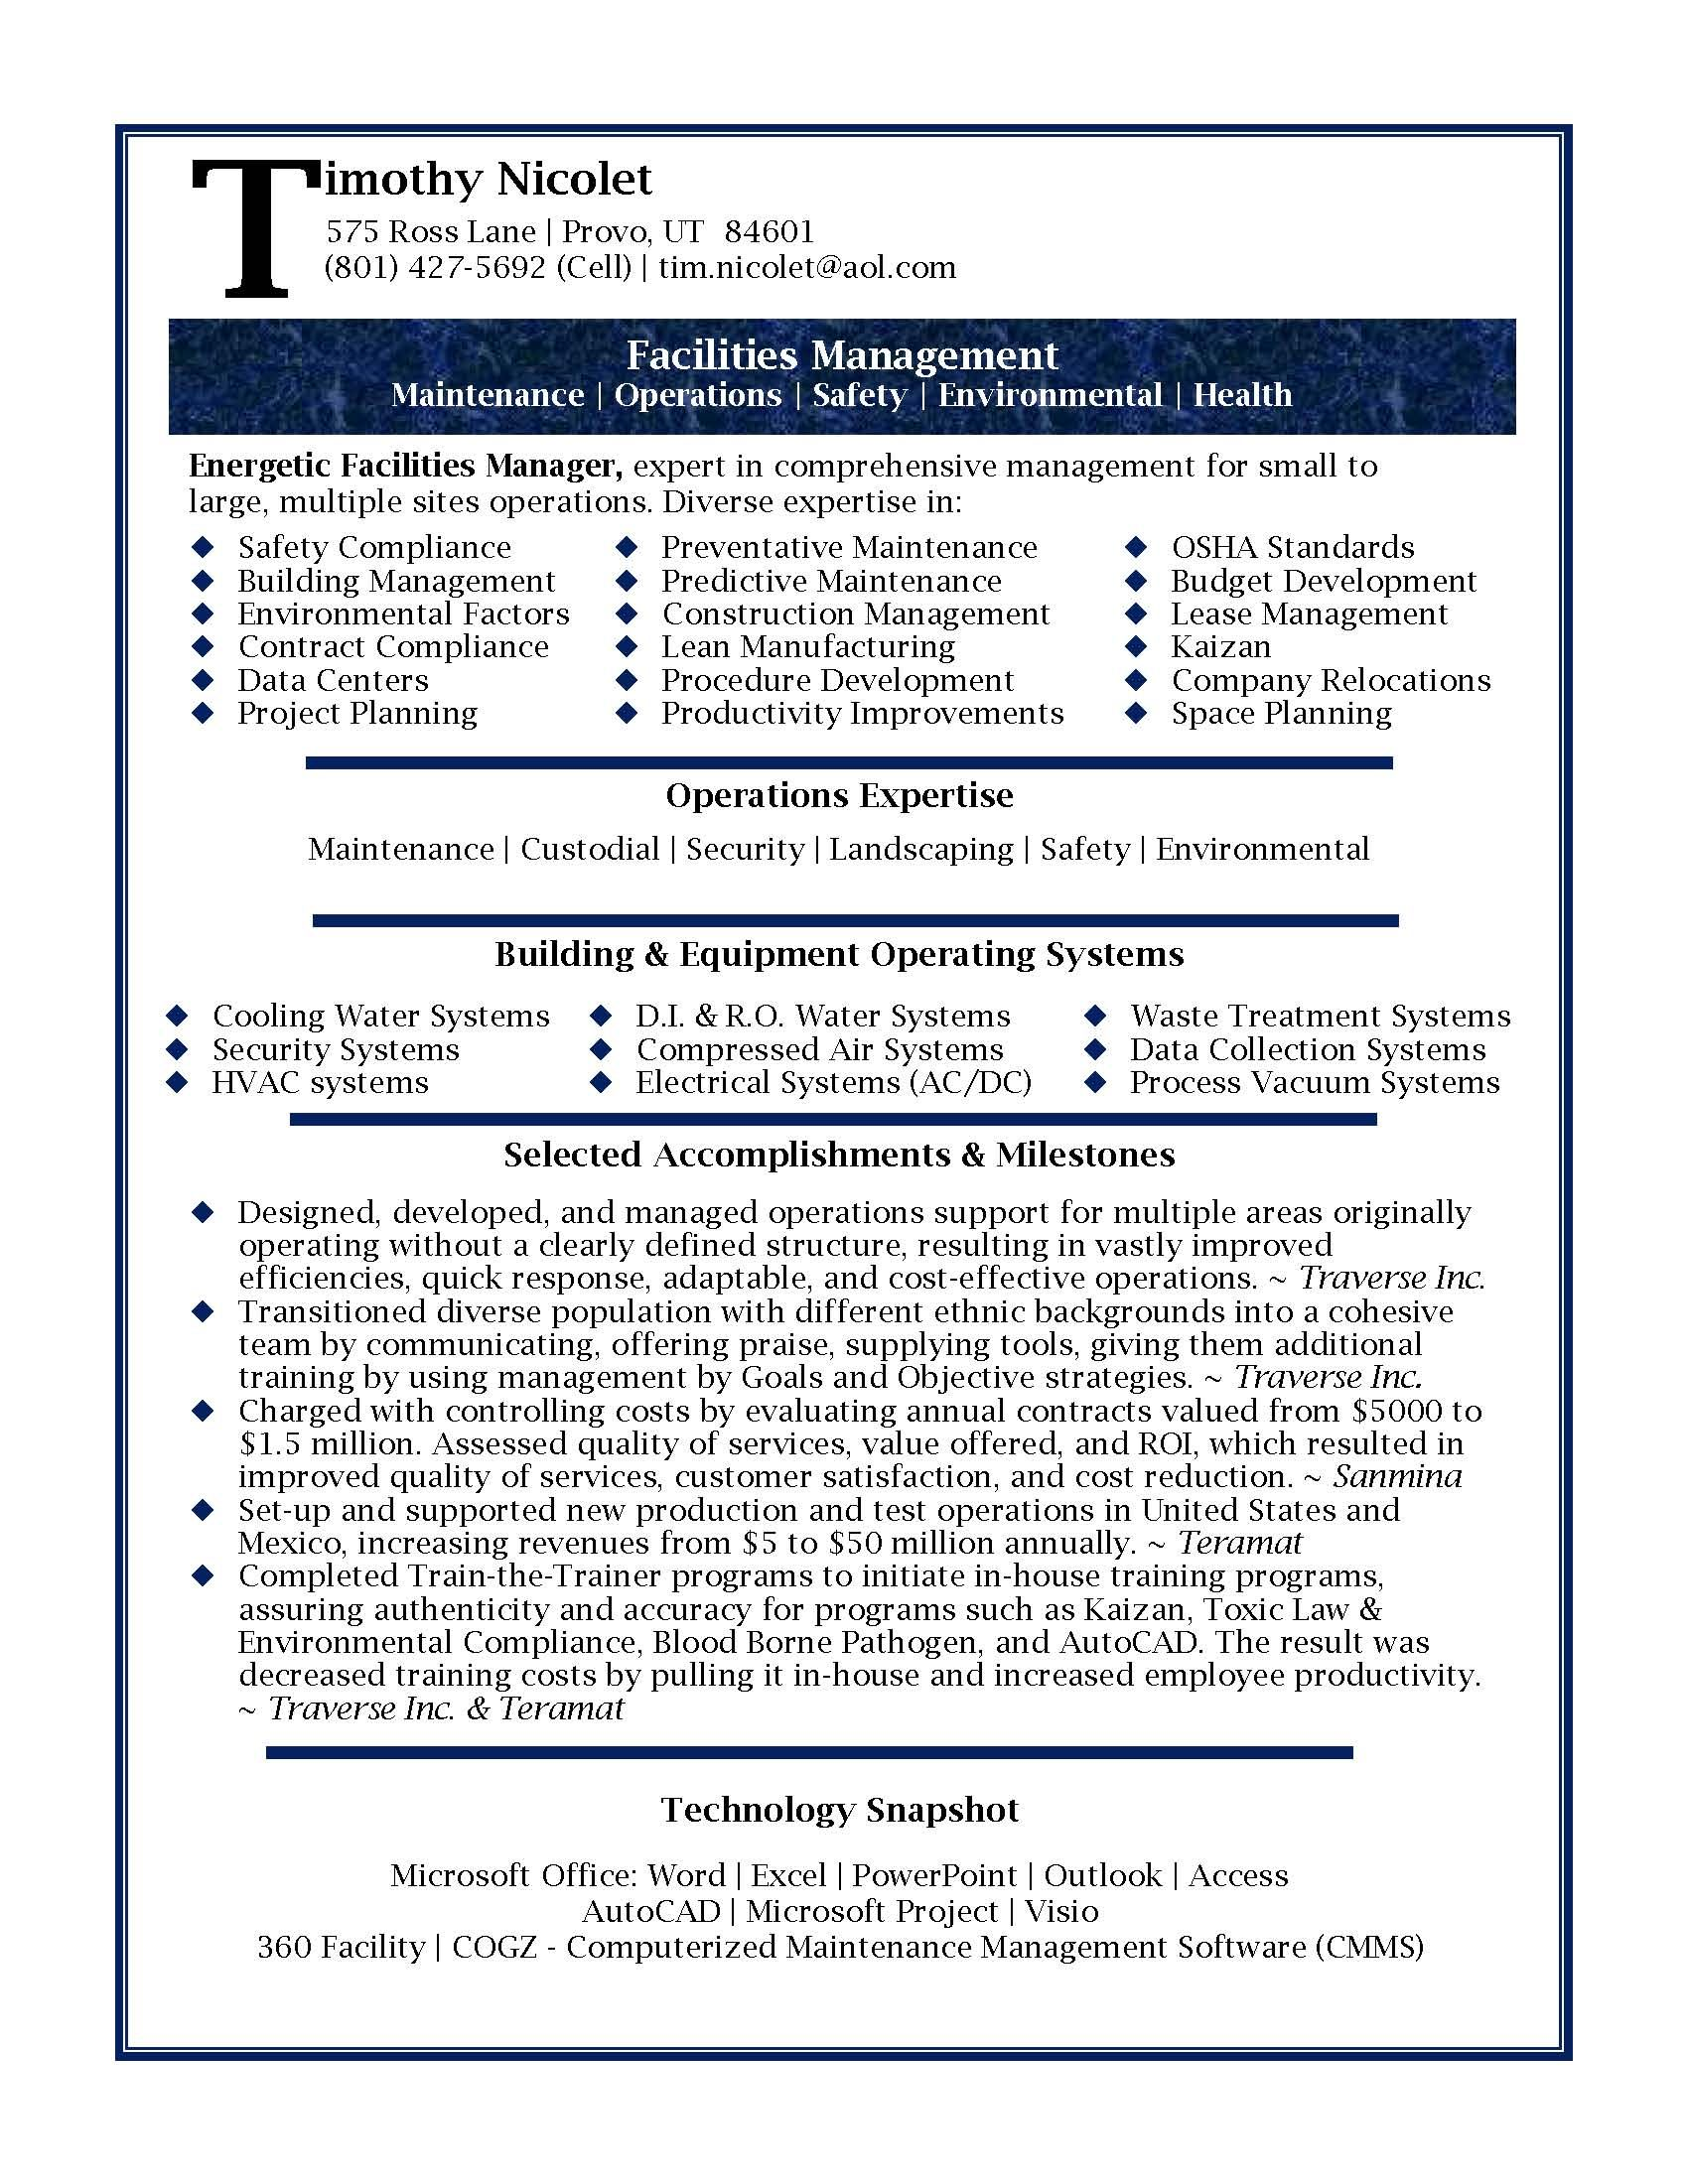 Professional resume samples by julie walraven cmrw workschool resume samples professional facilities manager resume sample flashek Image collections